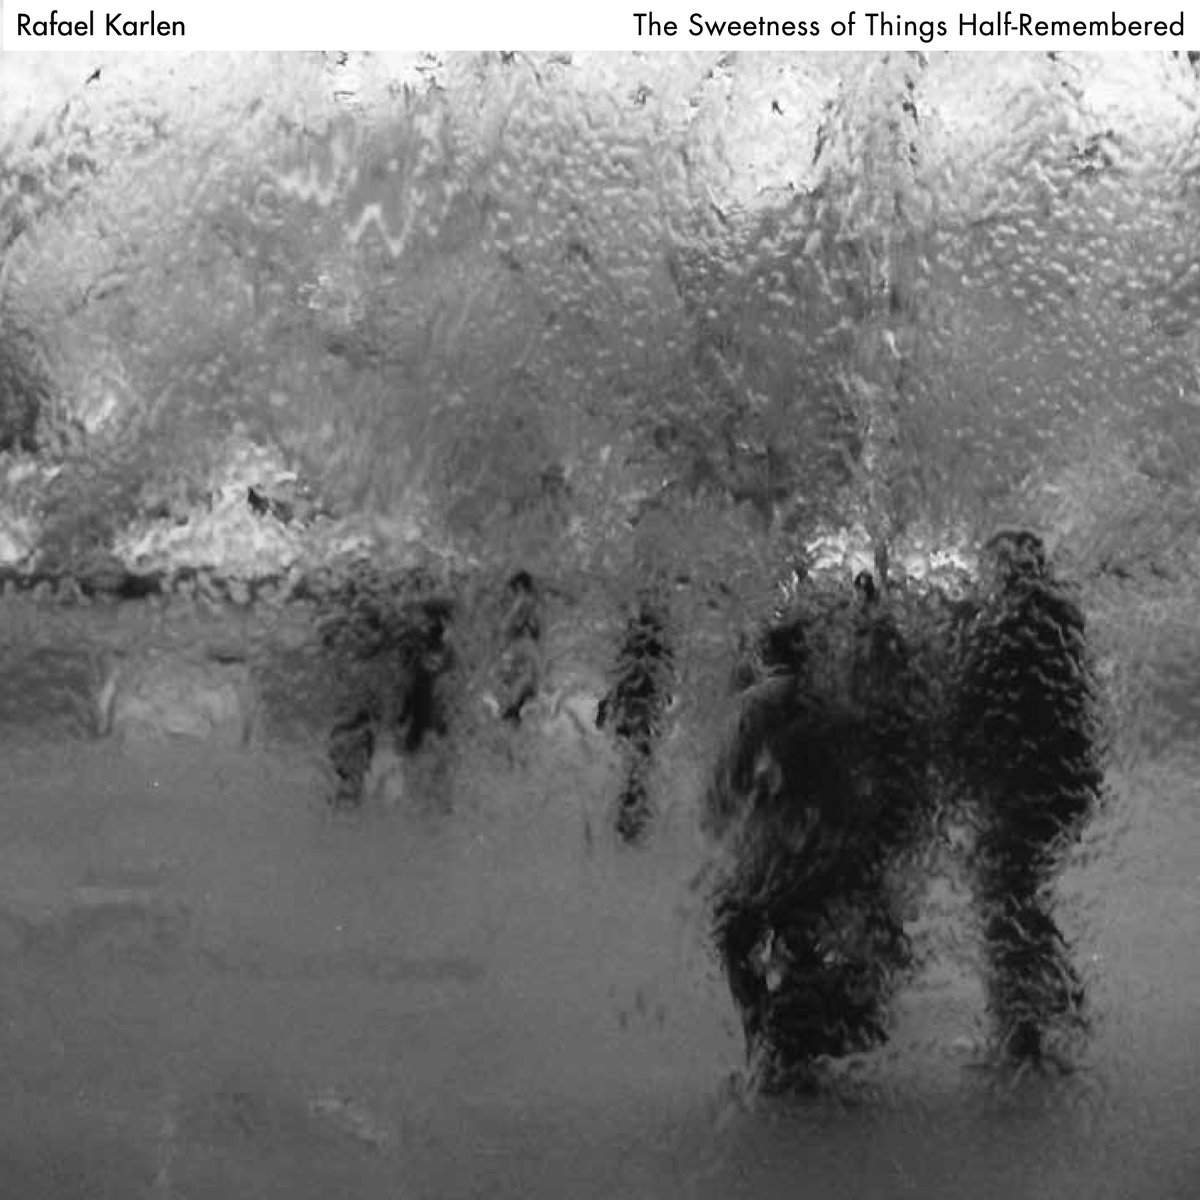 CD edition of The Sweetness of Things Half-Remembered. Includes a 12-page  booklet featuring beautiful photographs by Dave Collins in a four-panel  digi-pack